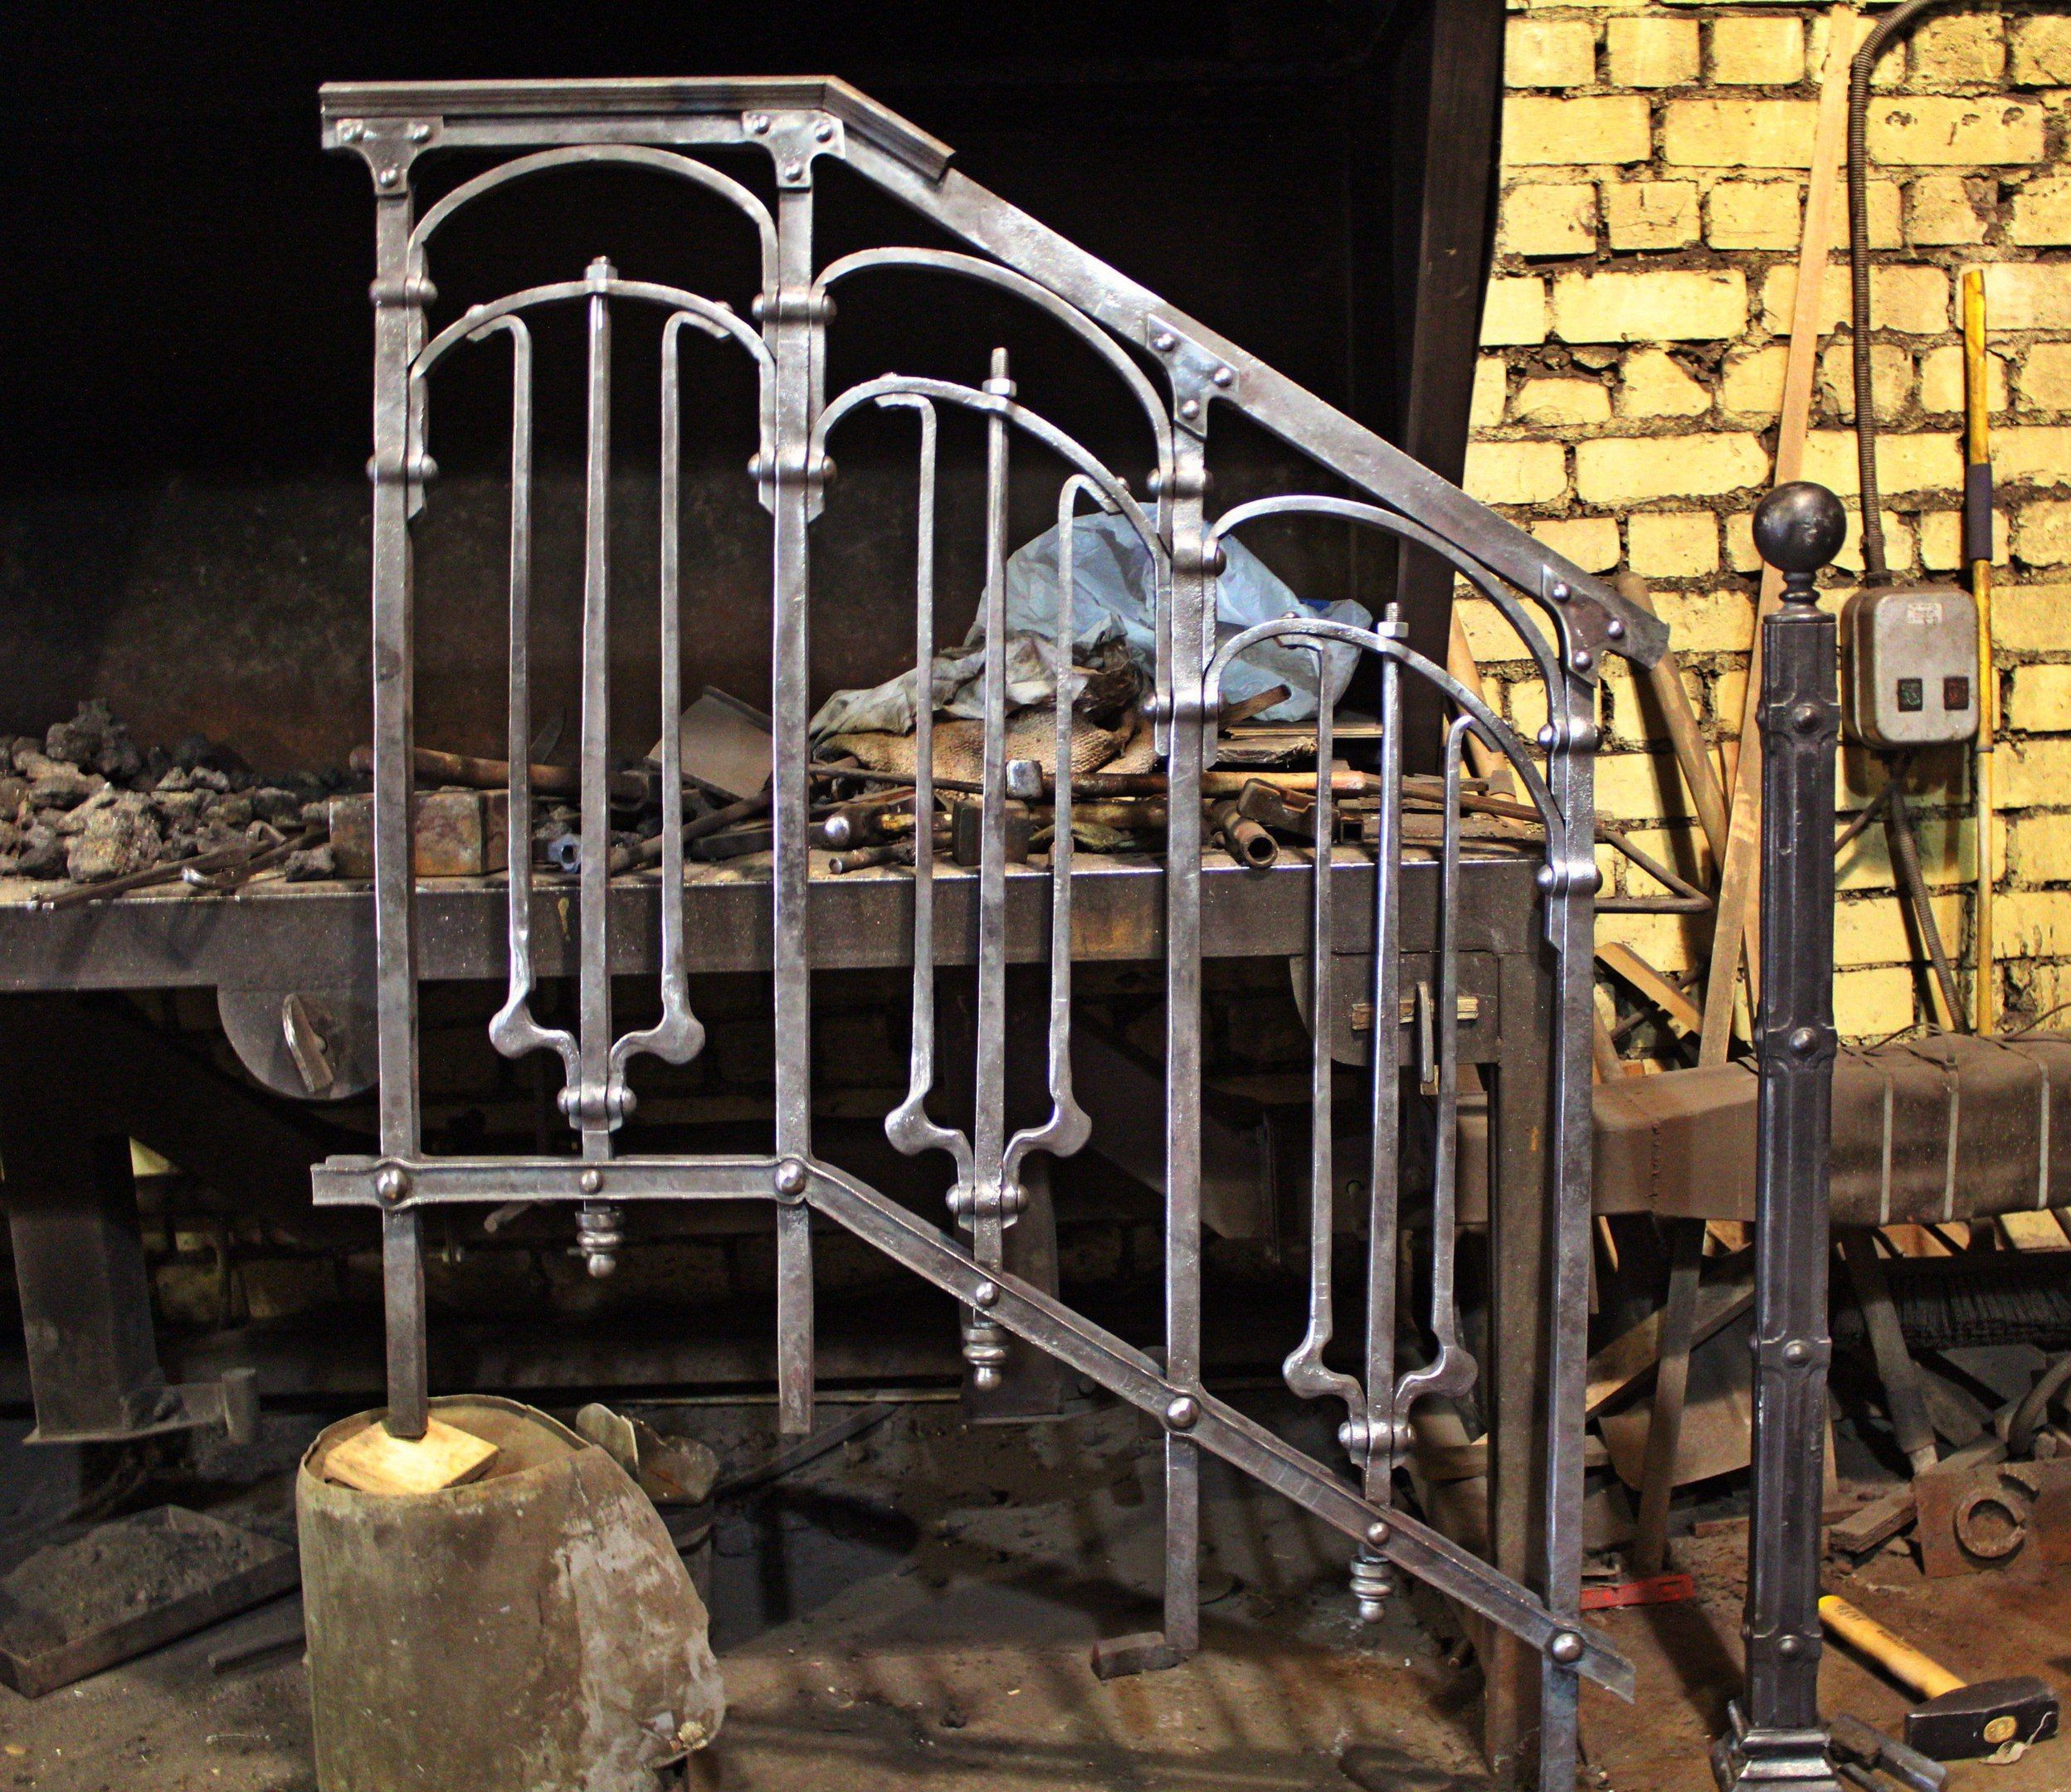 Wrought Iron Railings In Art Nouveau Style Wrought Iron Stair